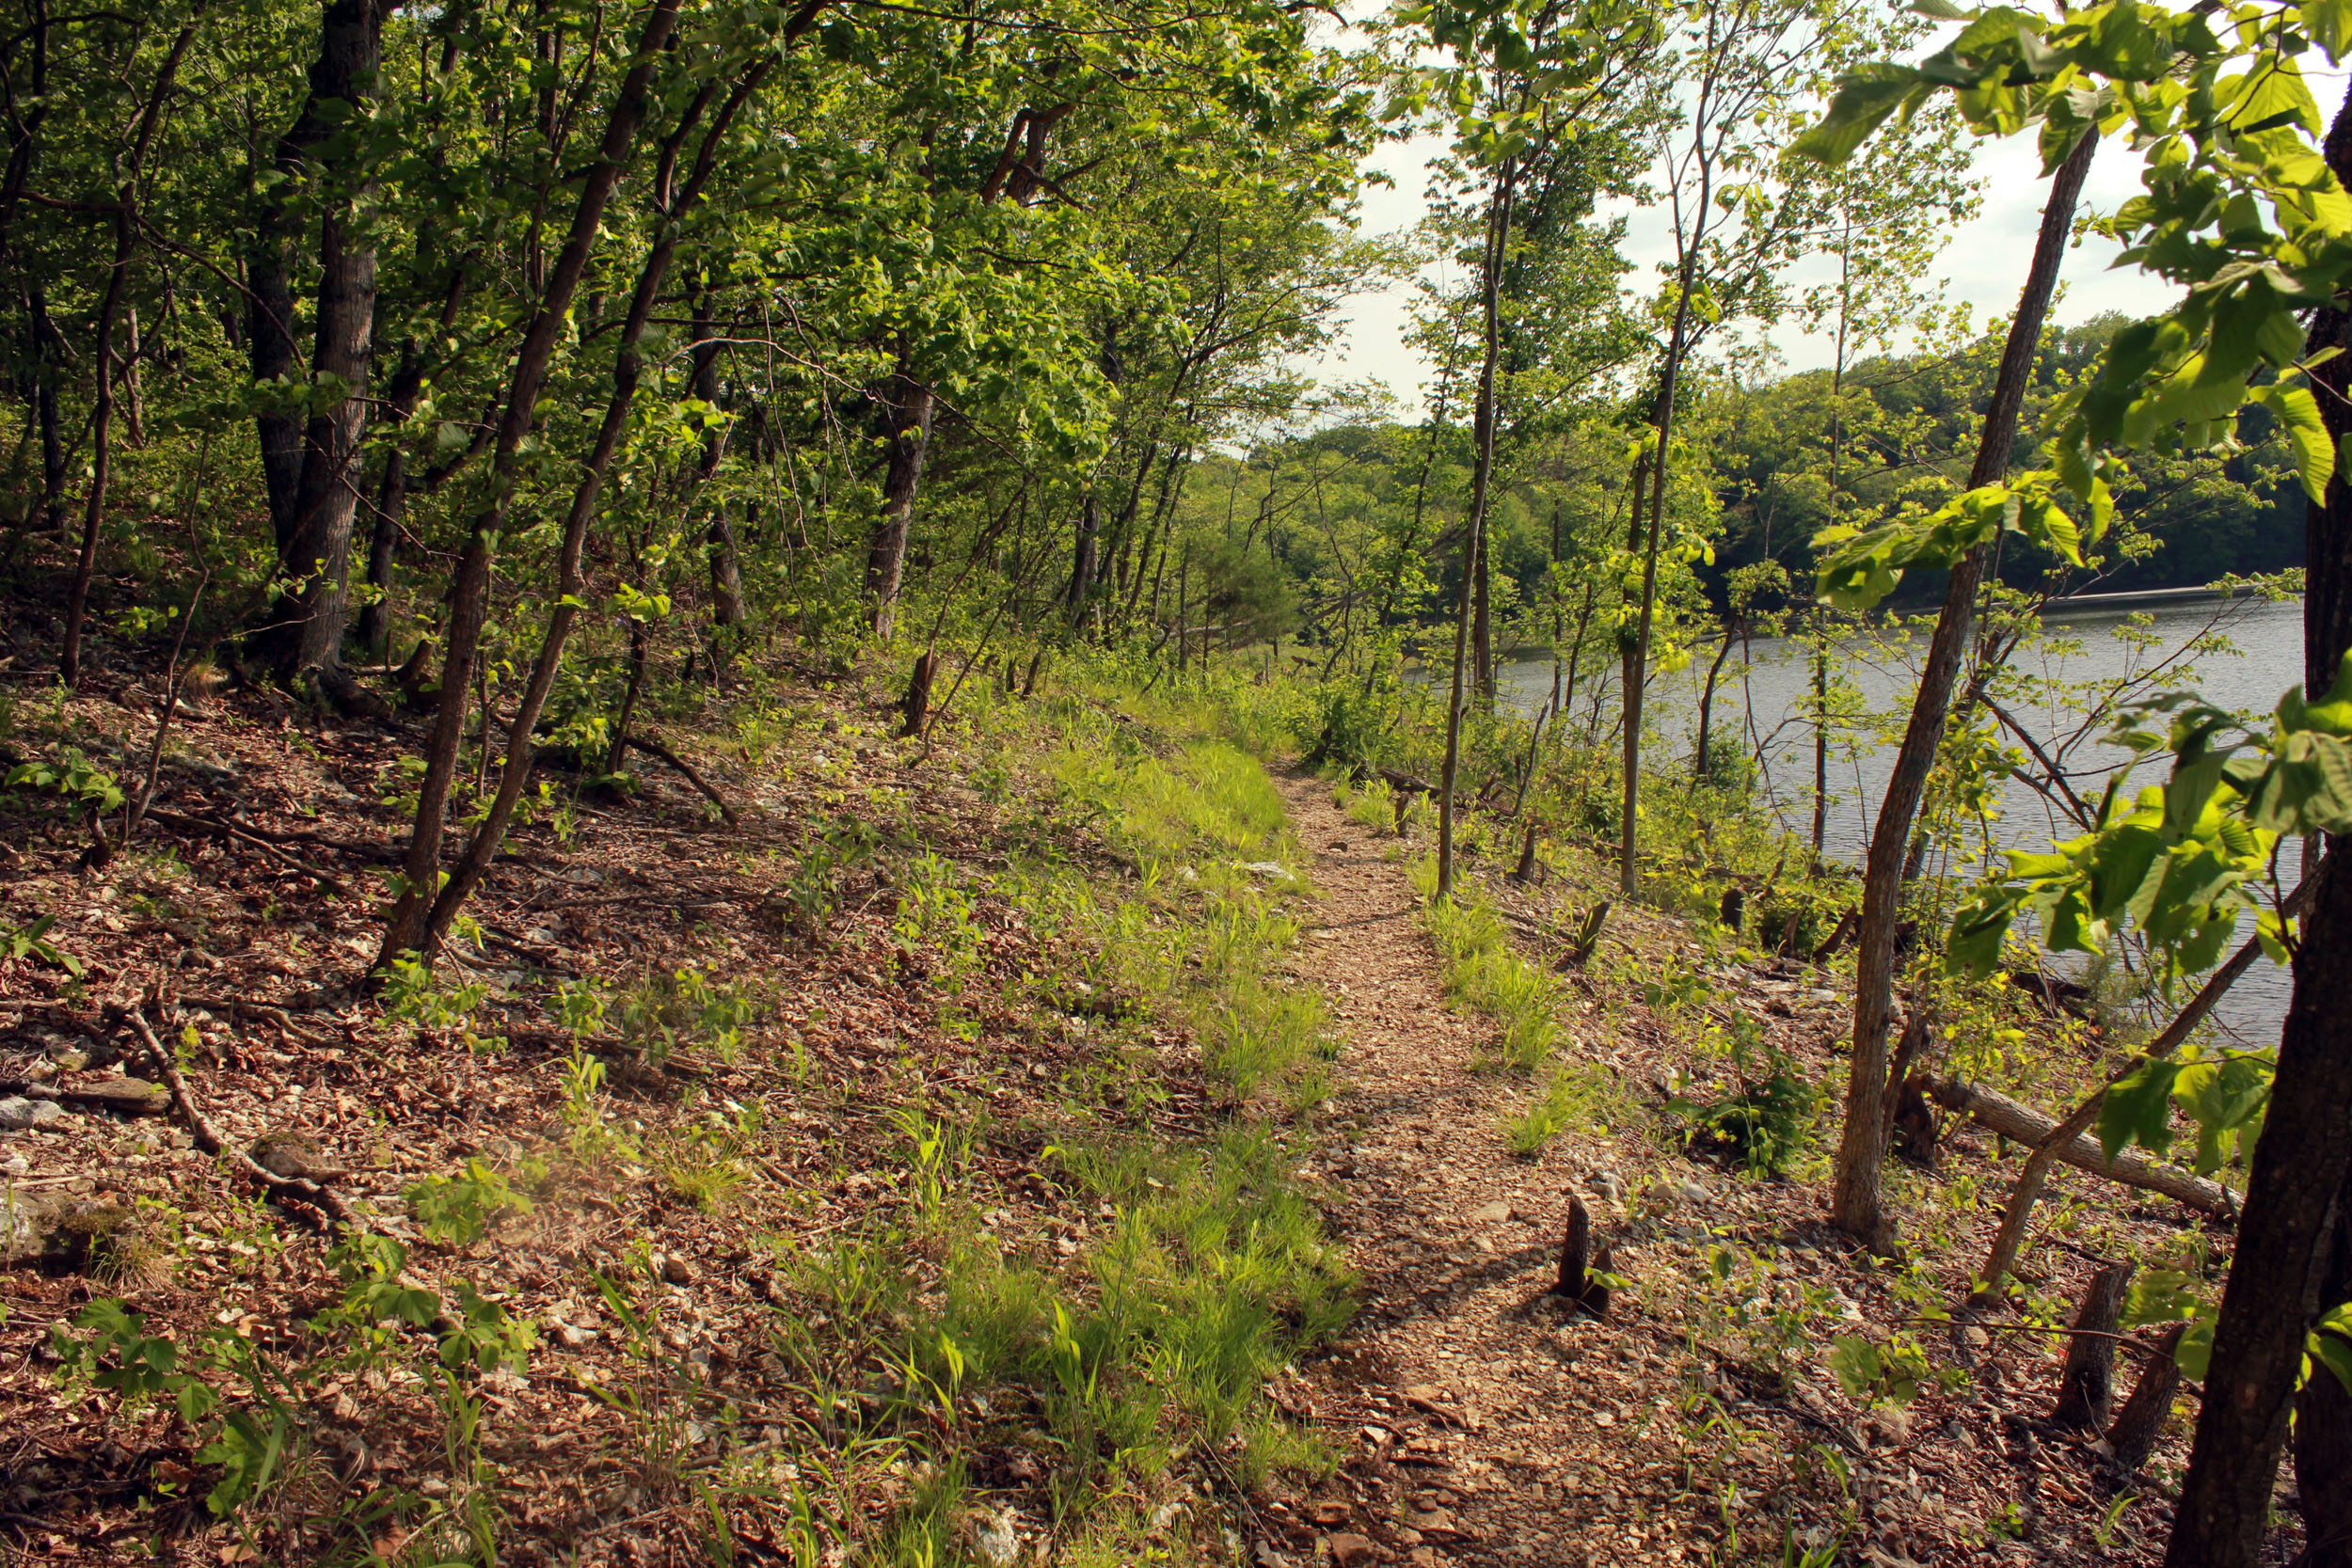 best hiking trails in every state - Missouri - River Scene Trail Loop